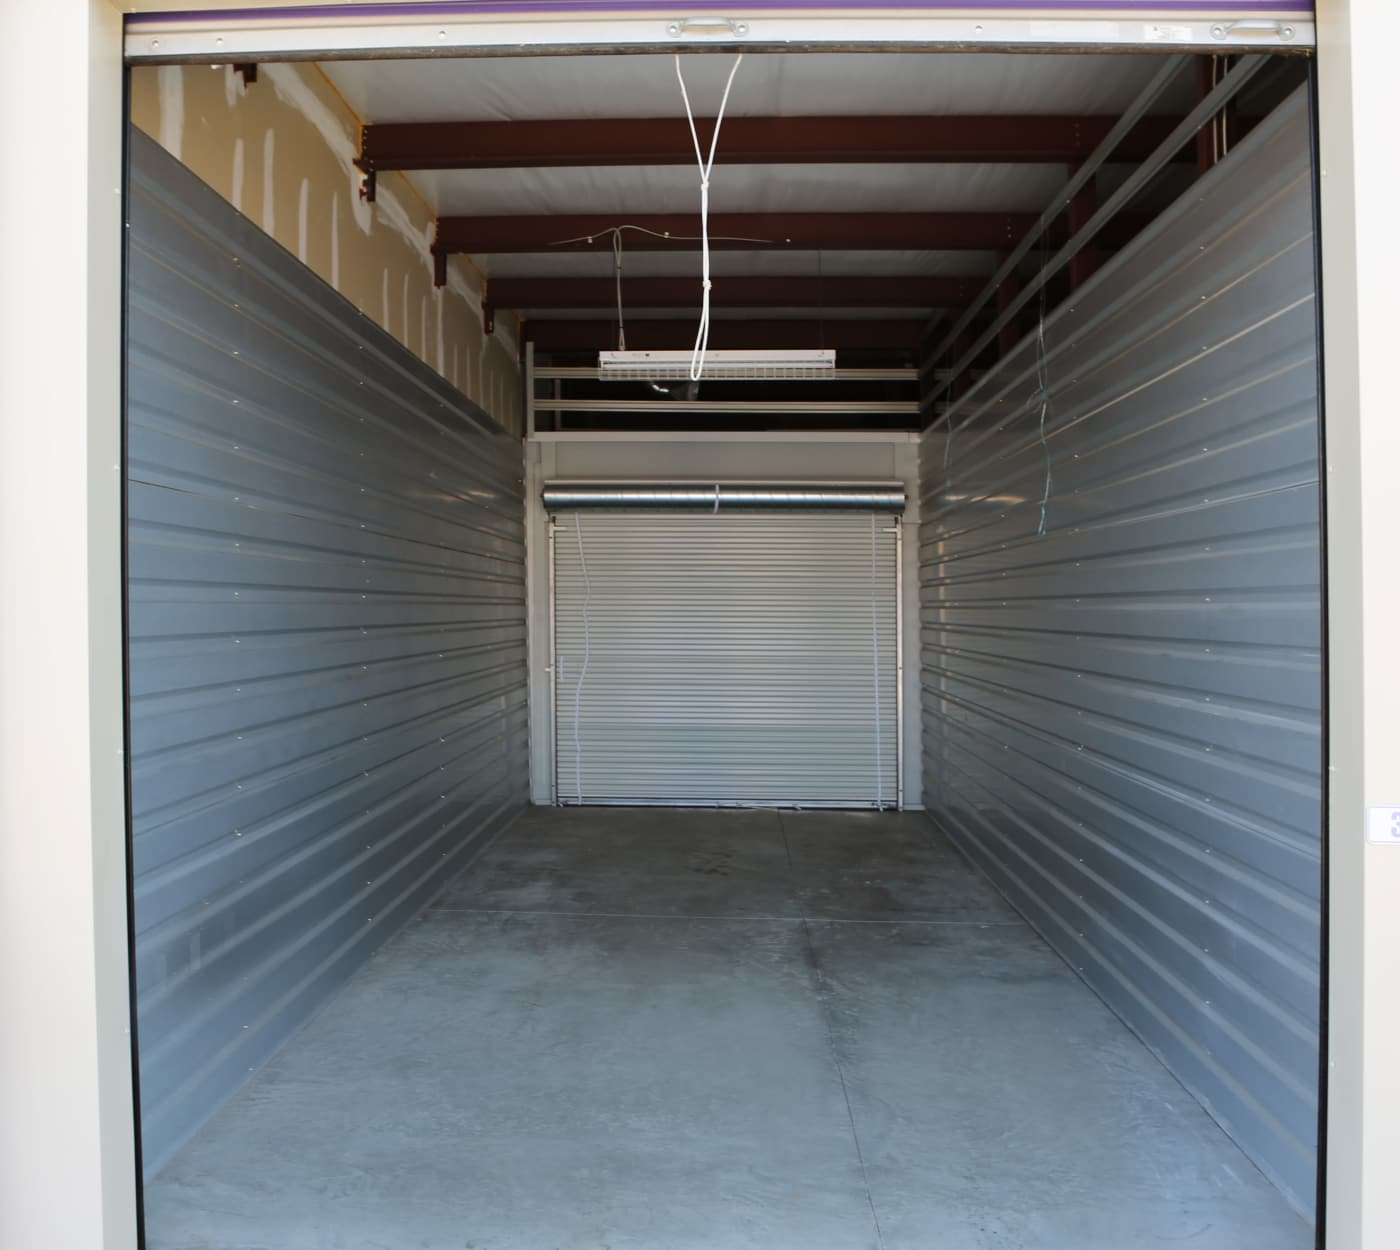 Ground-floor unit at StoreSmart Self-Storage in Englewood, Florida